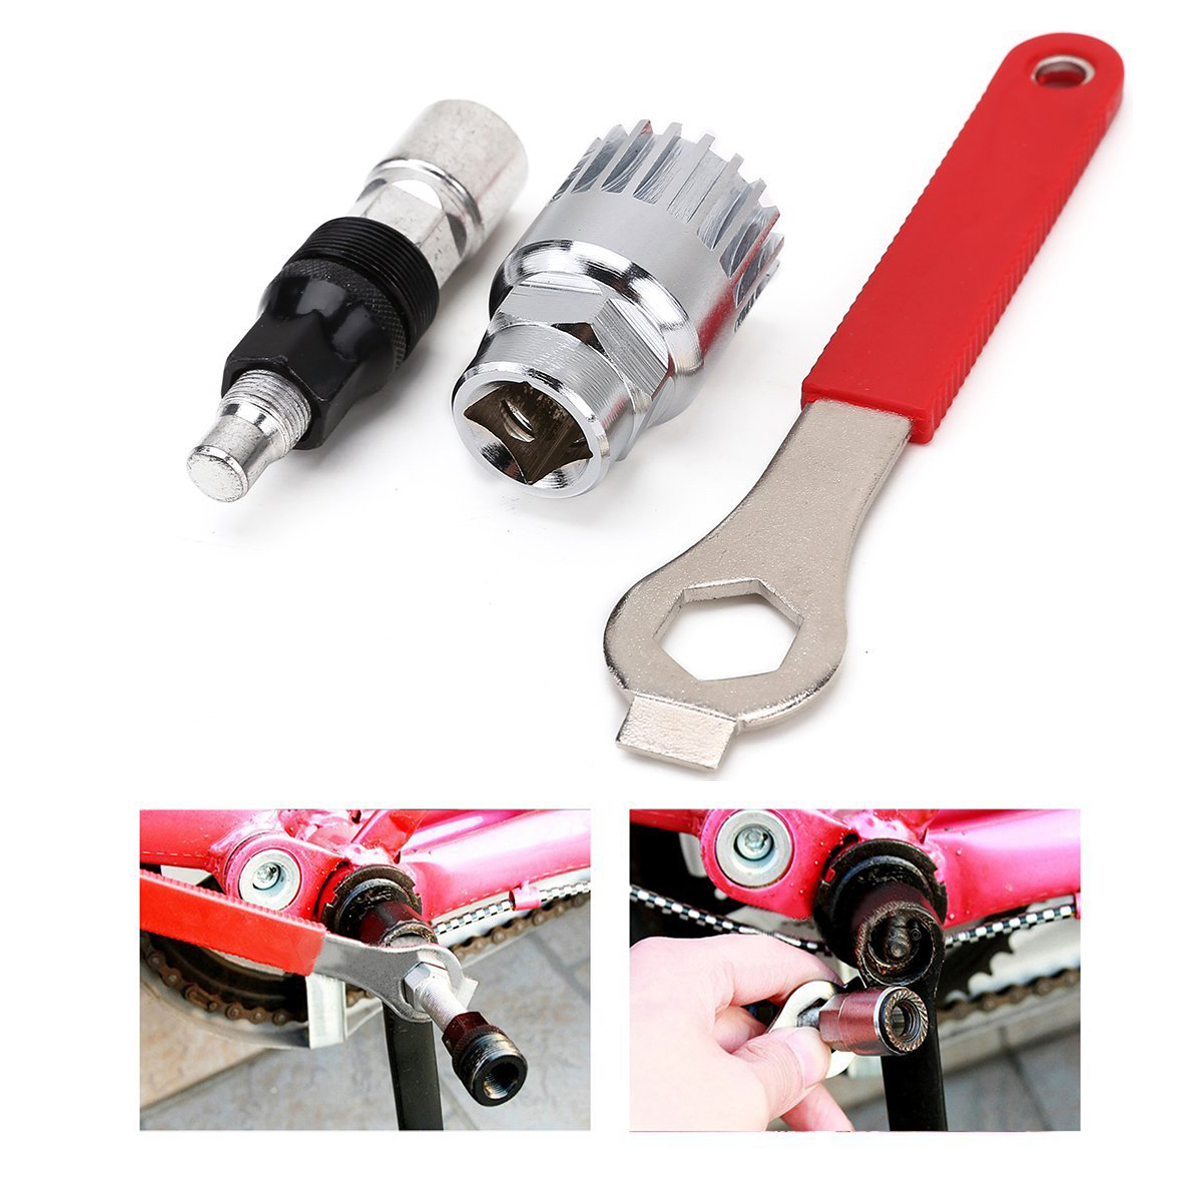 MTB Bike Bicycle Bottom Bracket Puller Crank Extractor Remover Removal Tool hot